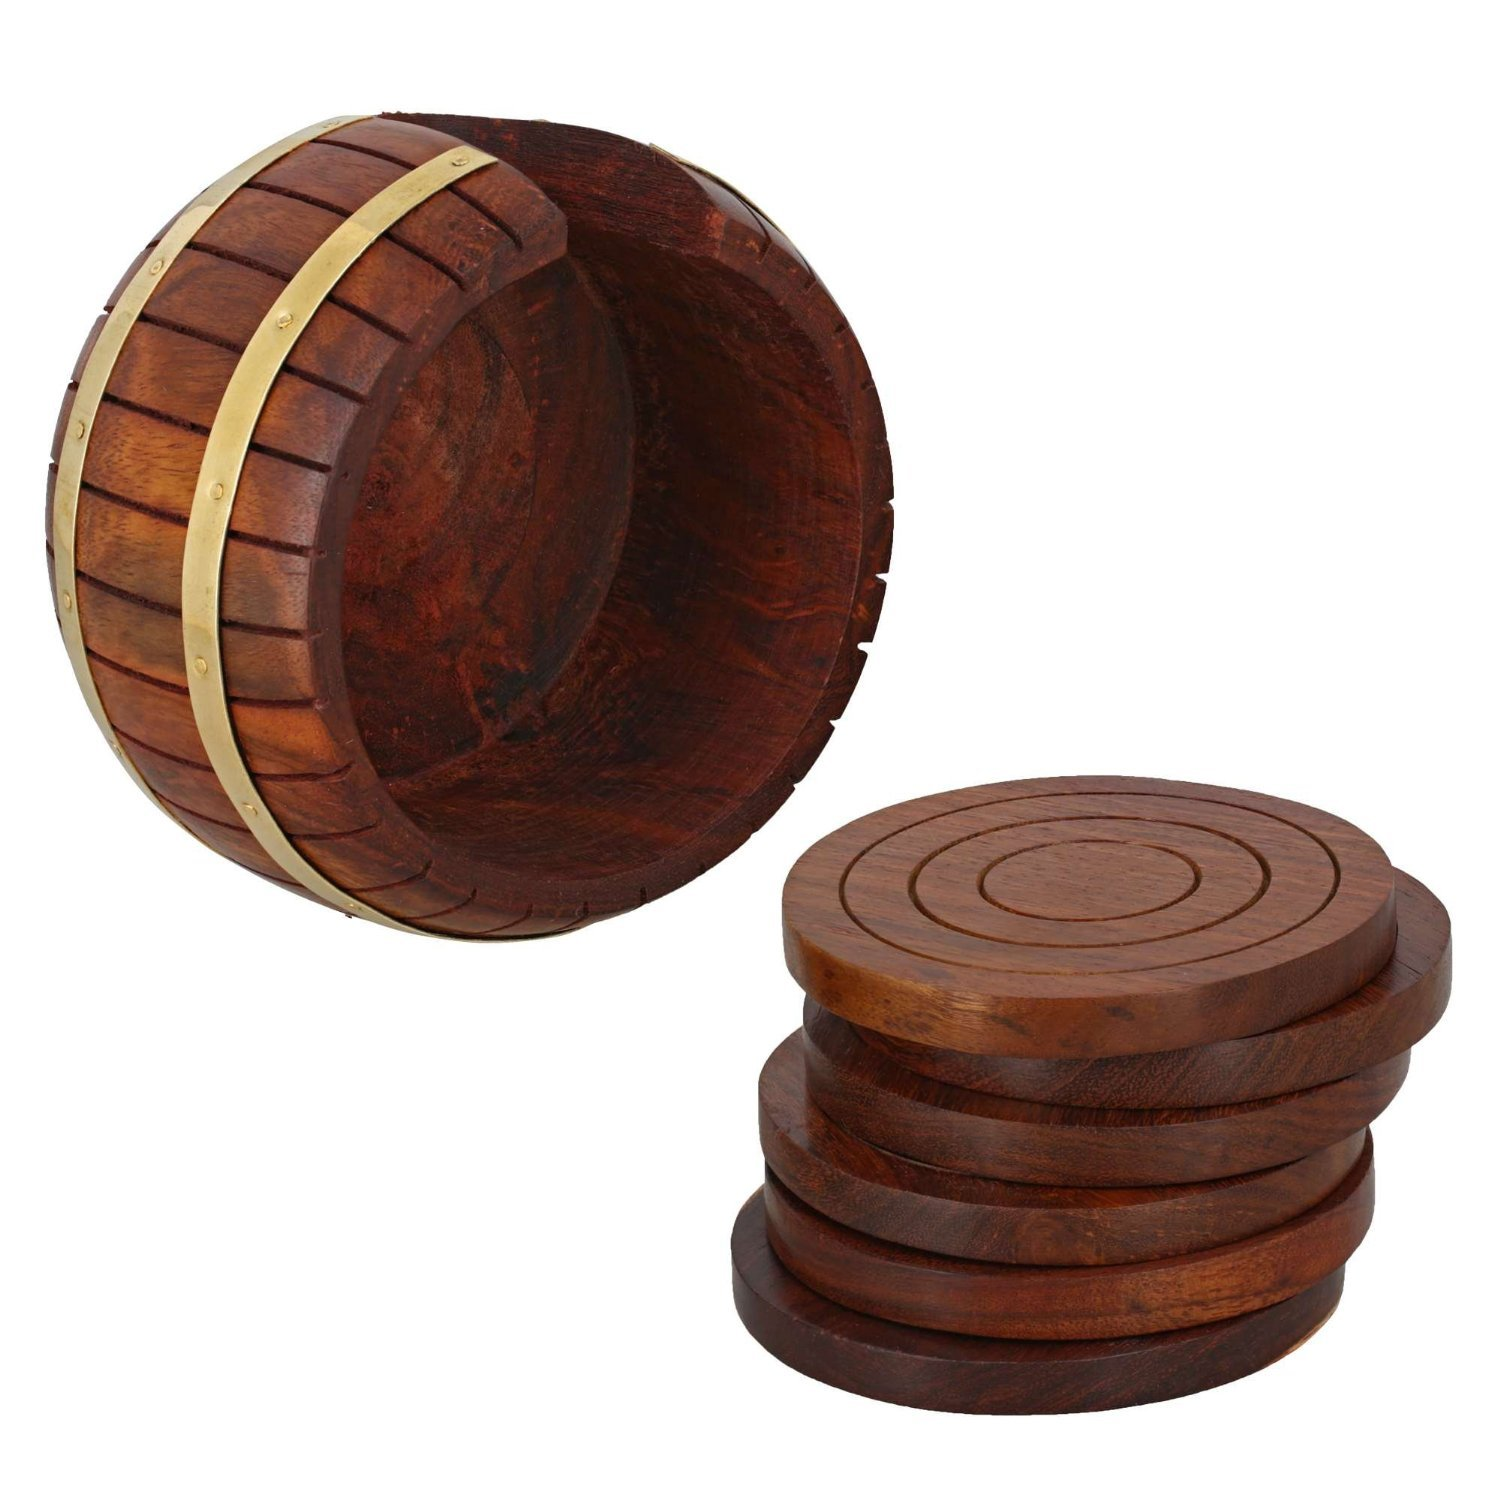 Set of 6 Drink Coaster Suitable for Wine Glasses Whiskey Glasses and Any Hot and Cold Drinks Beer Bottles Handmade Barrel Shaped Wooden Tea Coaster